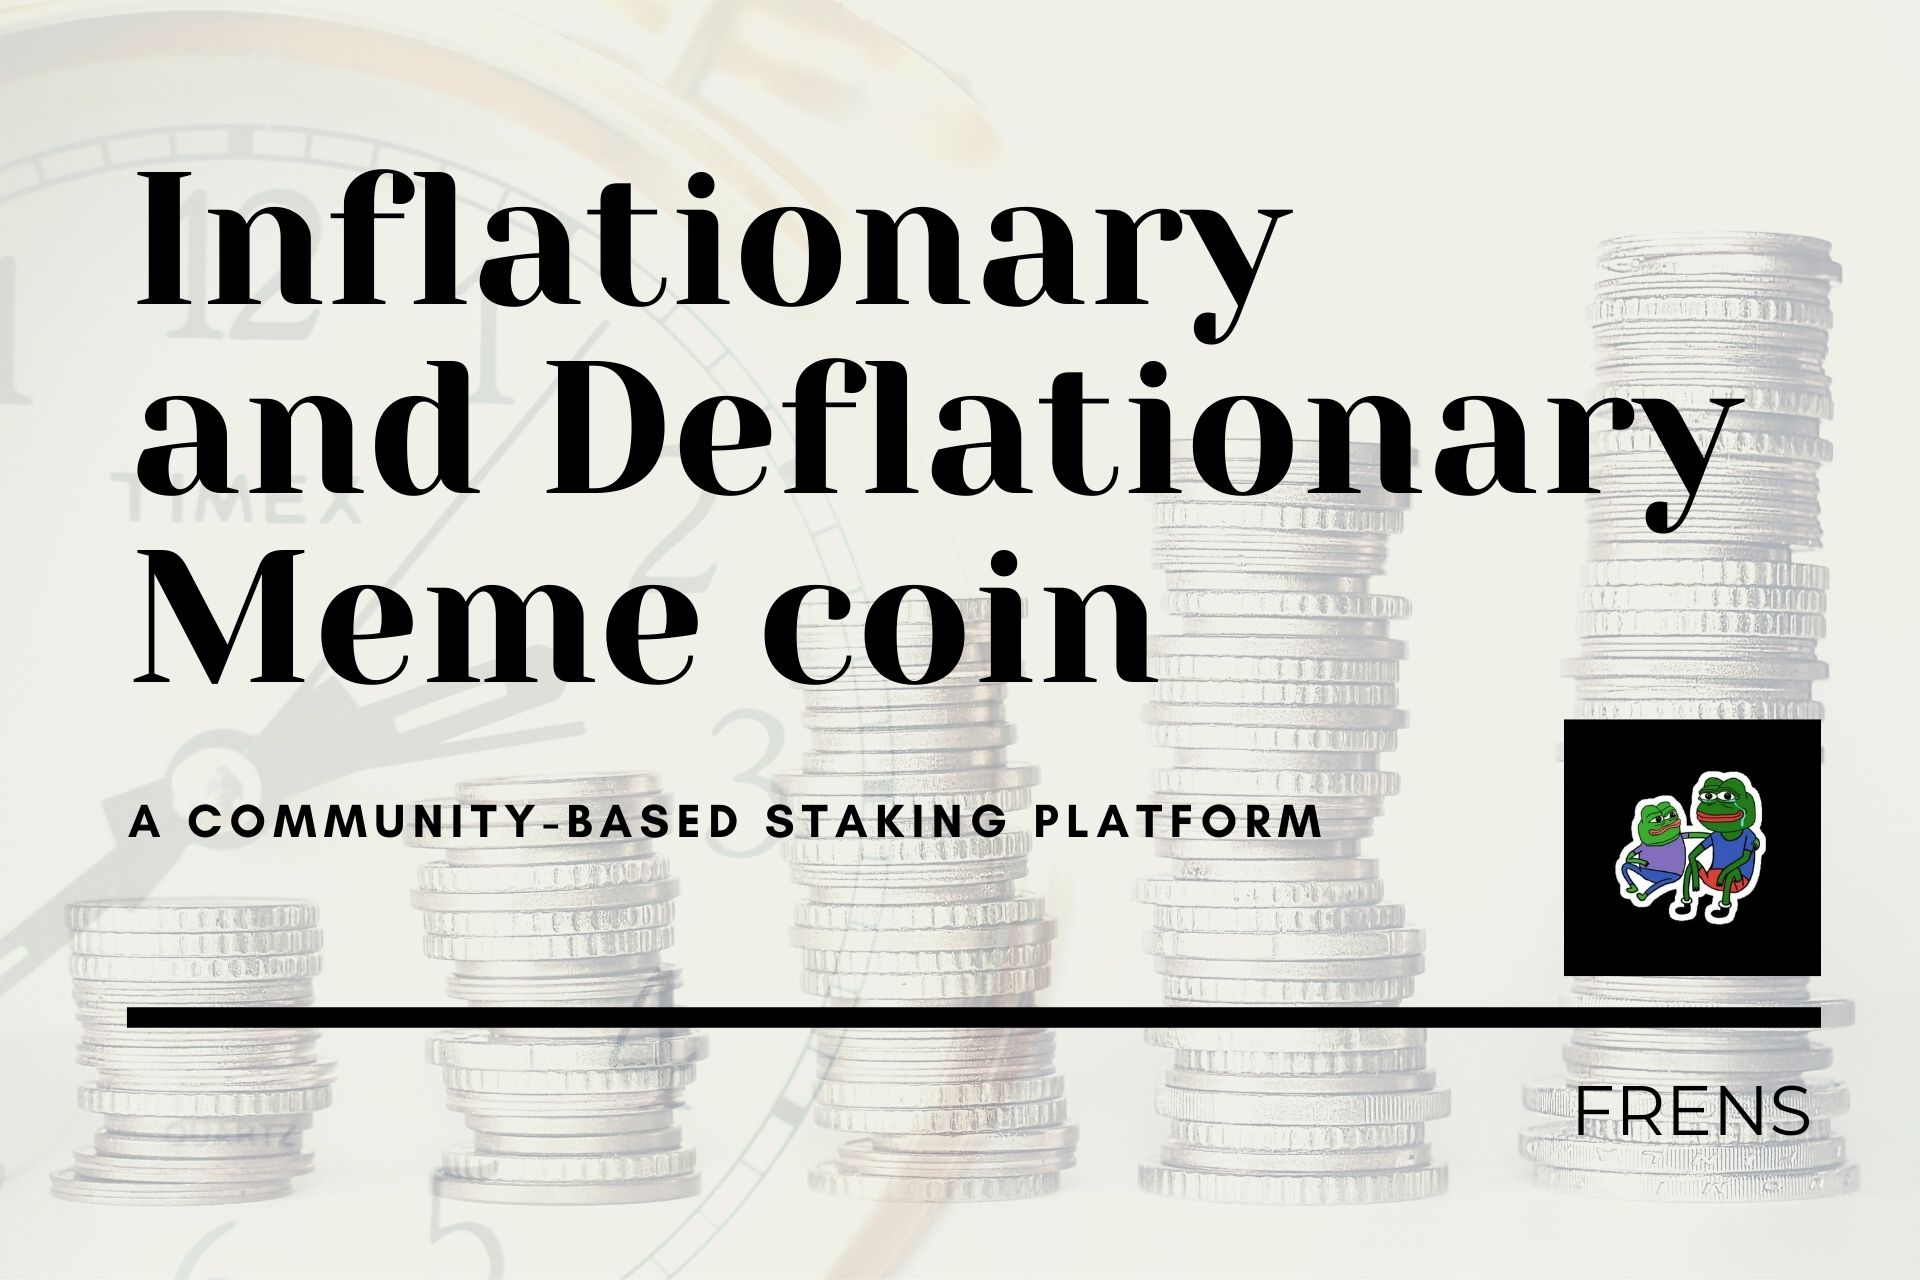 Frens: An Inflationary and Deflationary Meme coin Developed for the Community